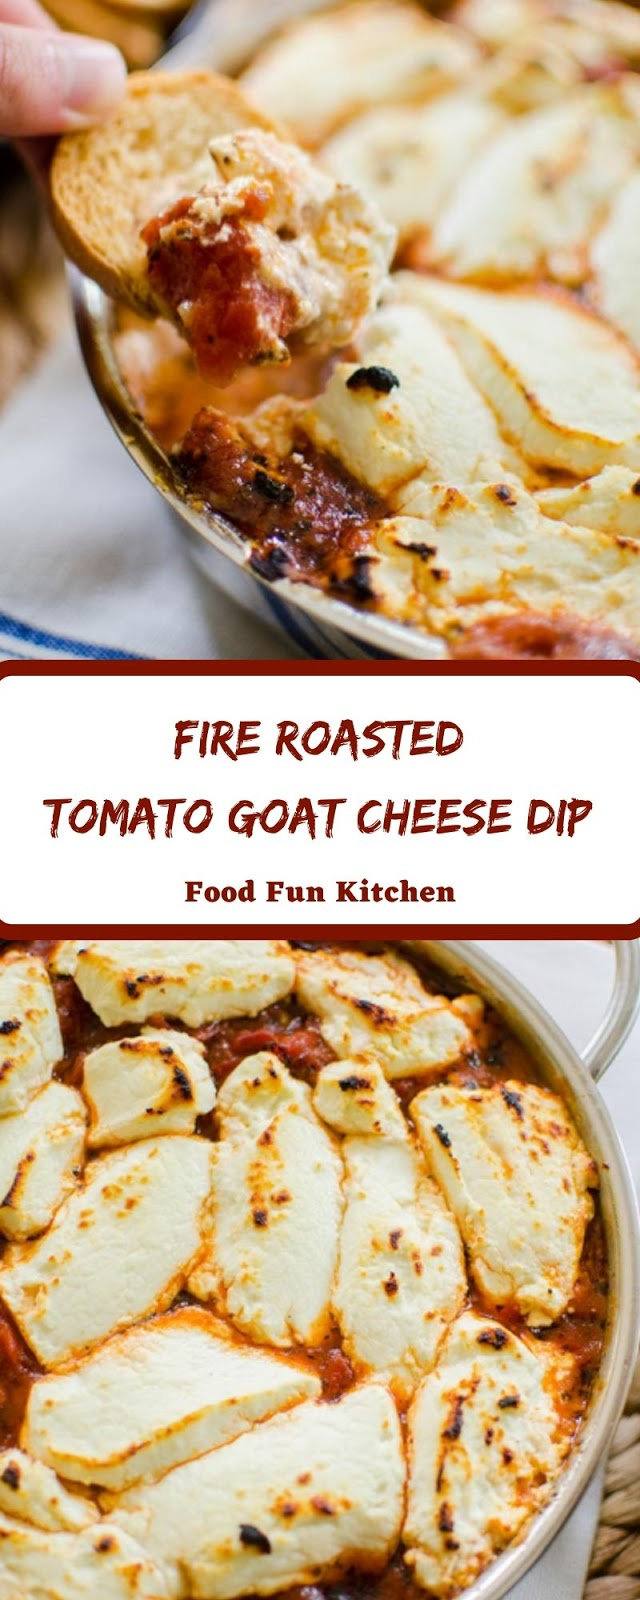 FIRE ROASTED TOMATO GOAT CHEESE DIP